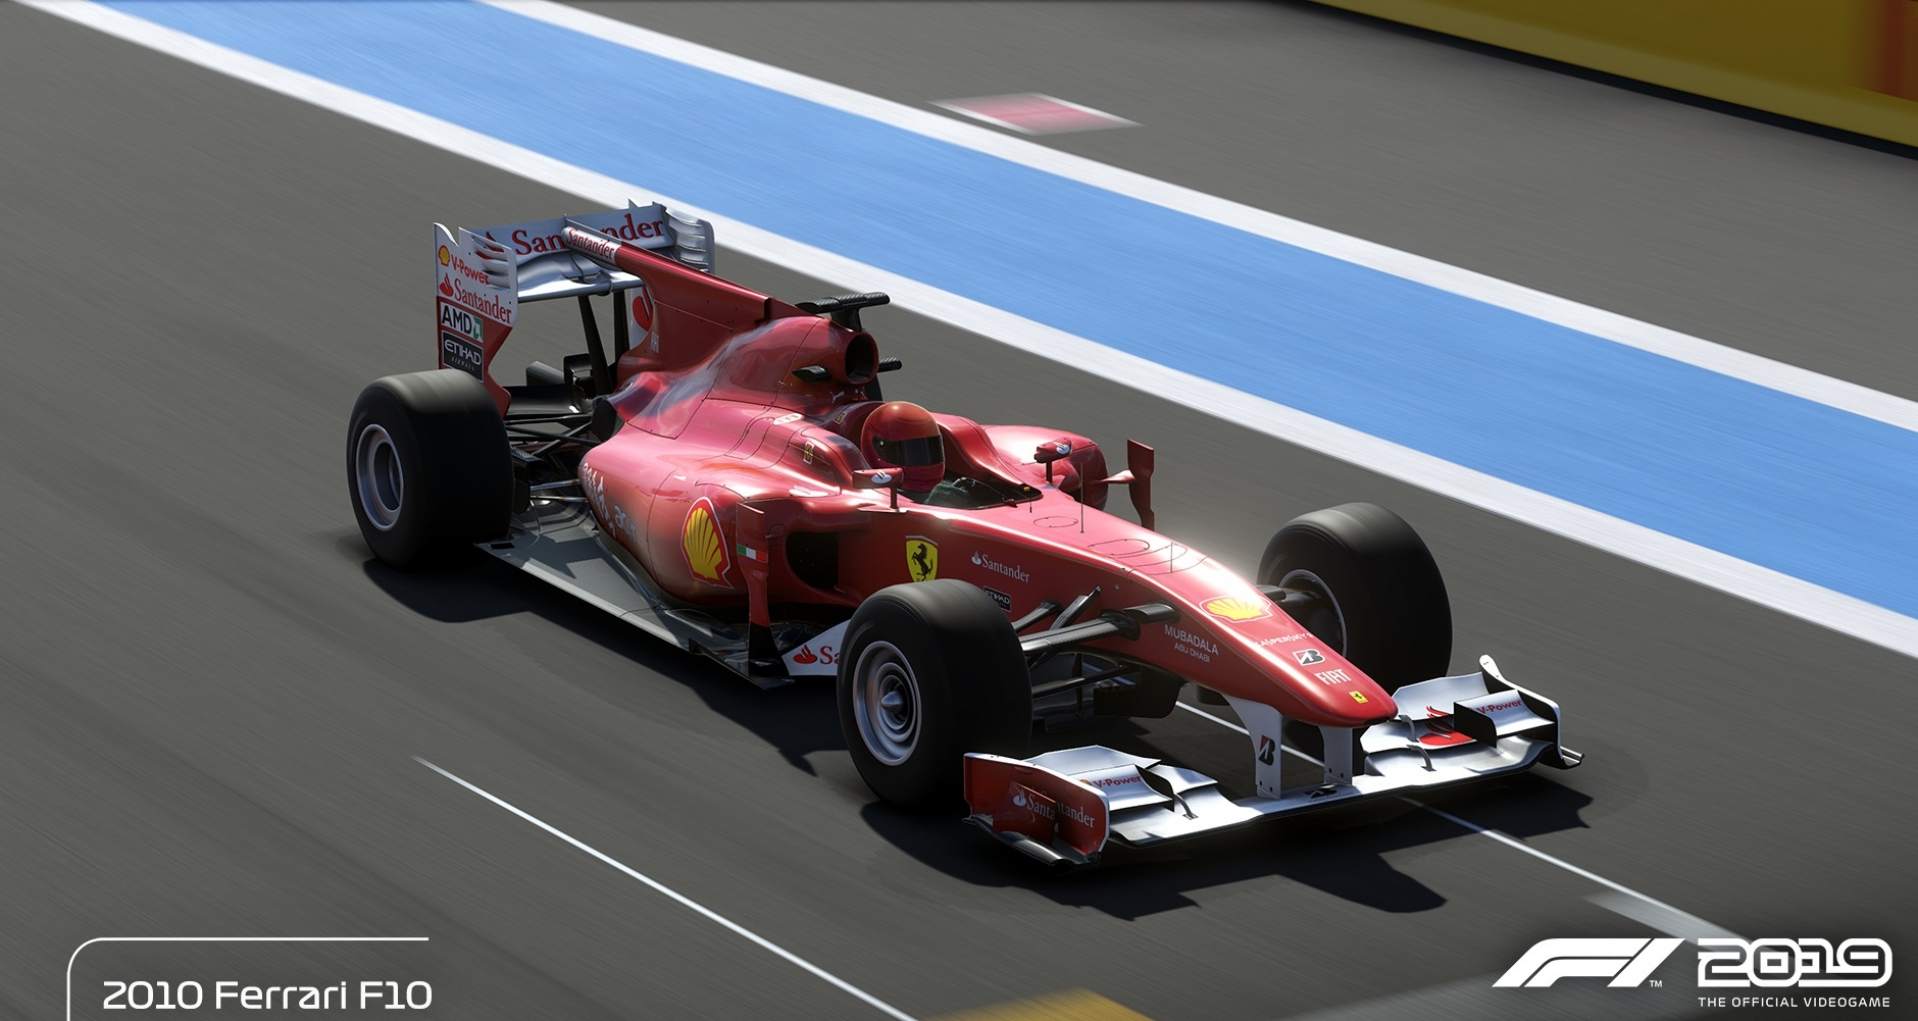 AMD's boosts F1 2019's performance with Radeon Software Adrenalin